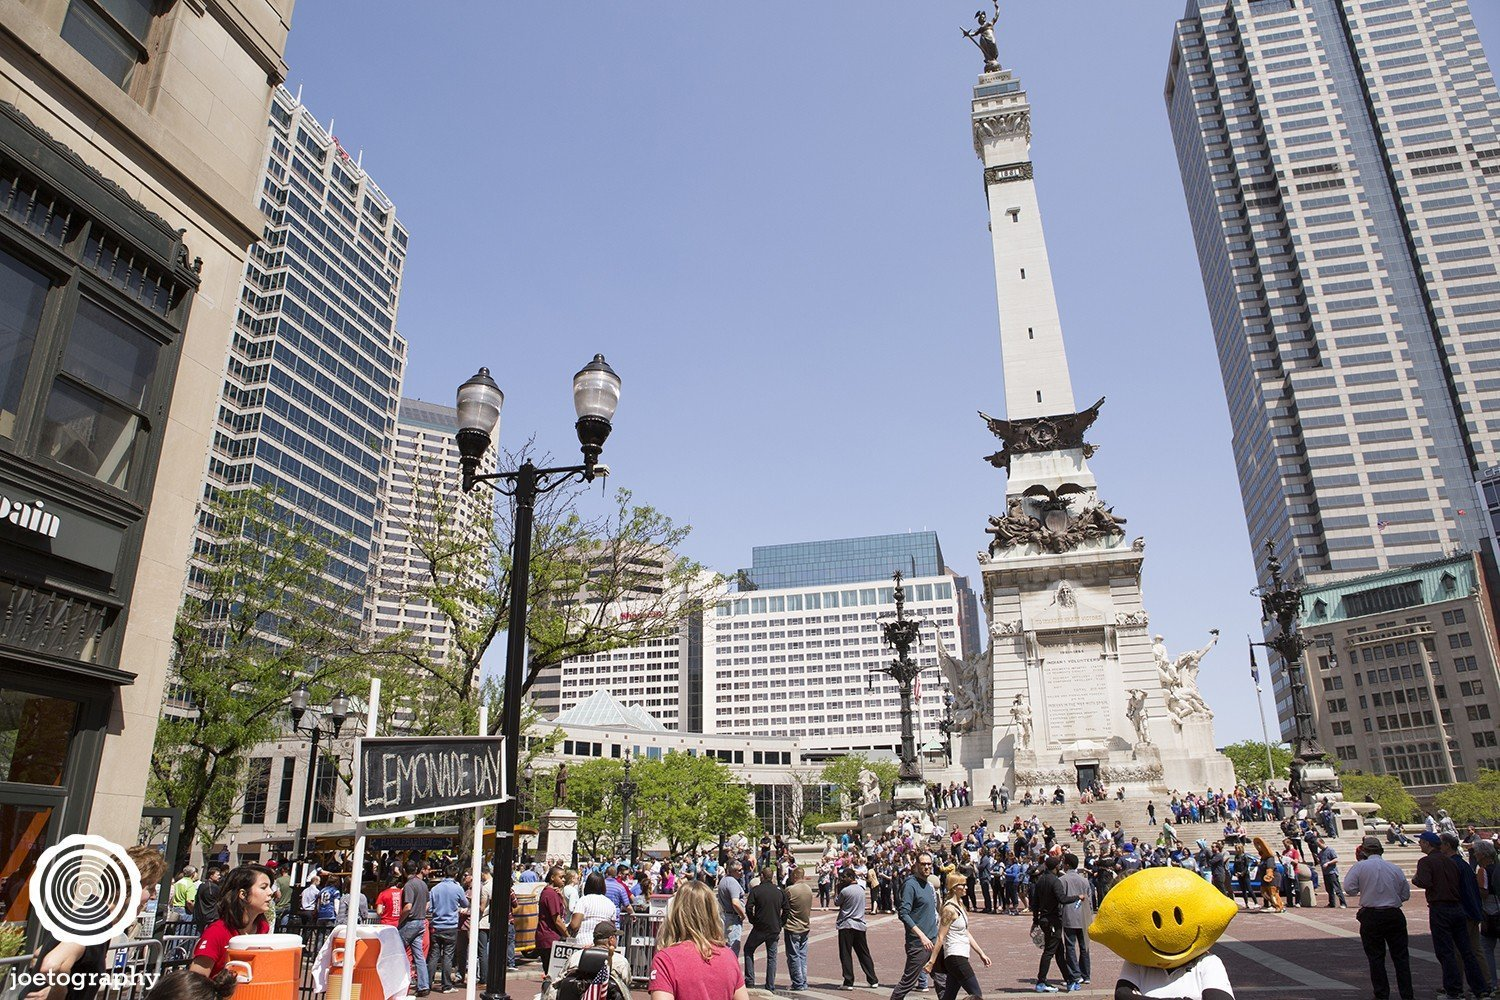 indianapolis-event-photography-lemonade-day-8